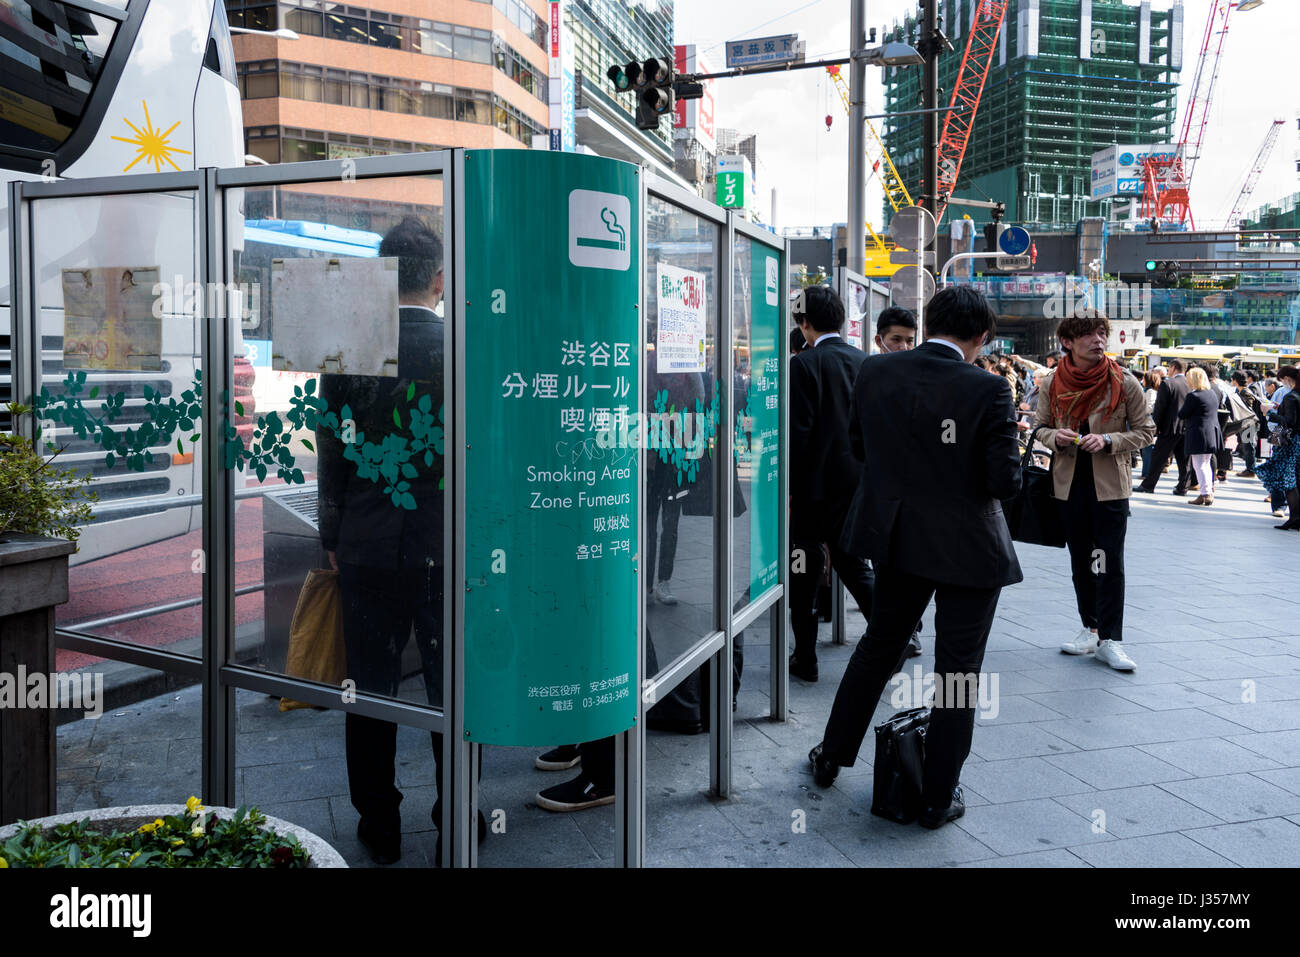 Segregated smoking area in a Tokyo street. - Stock Image